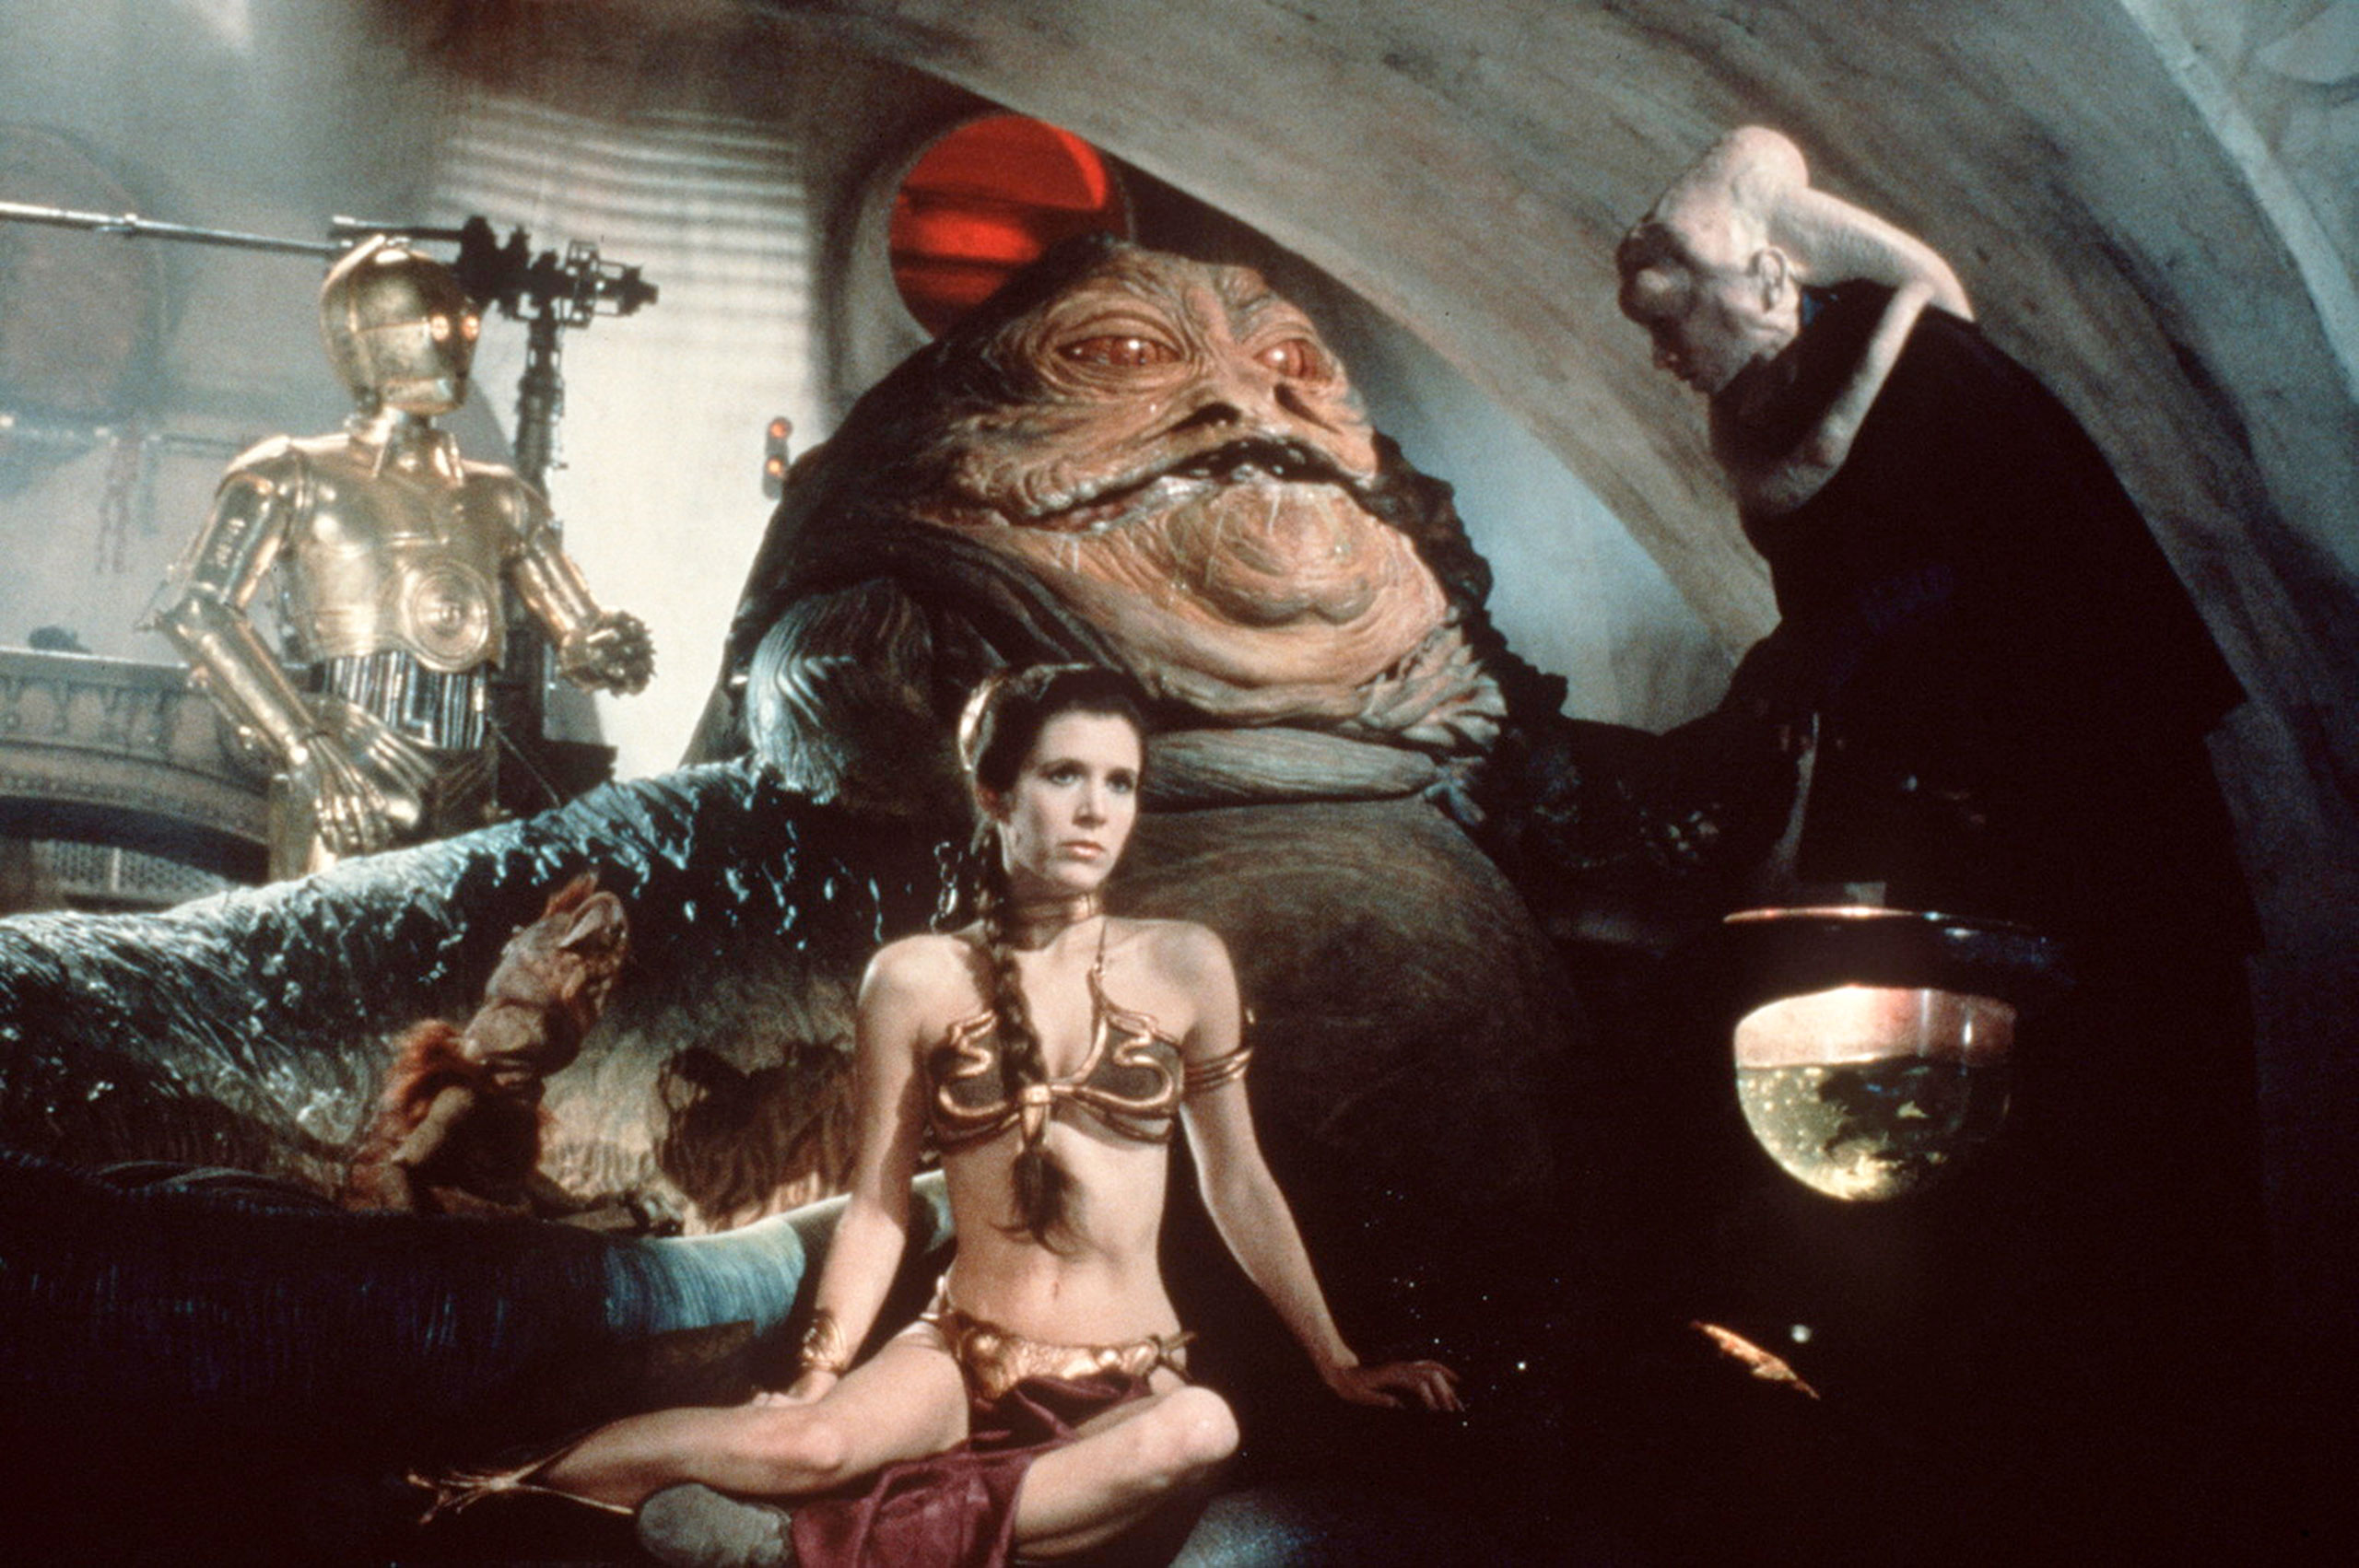 Princess Leia's Metal Bra Arguably as iconic as the Princess's hair buns, this costume piece was created for actress Carrie Fisher after she reportedly complained that her character's costumes were too roomy. It was made using a cast of her body.